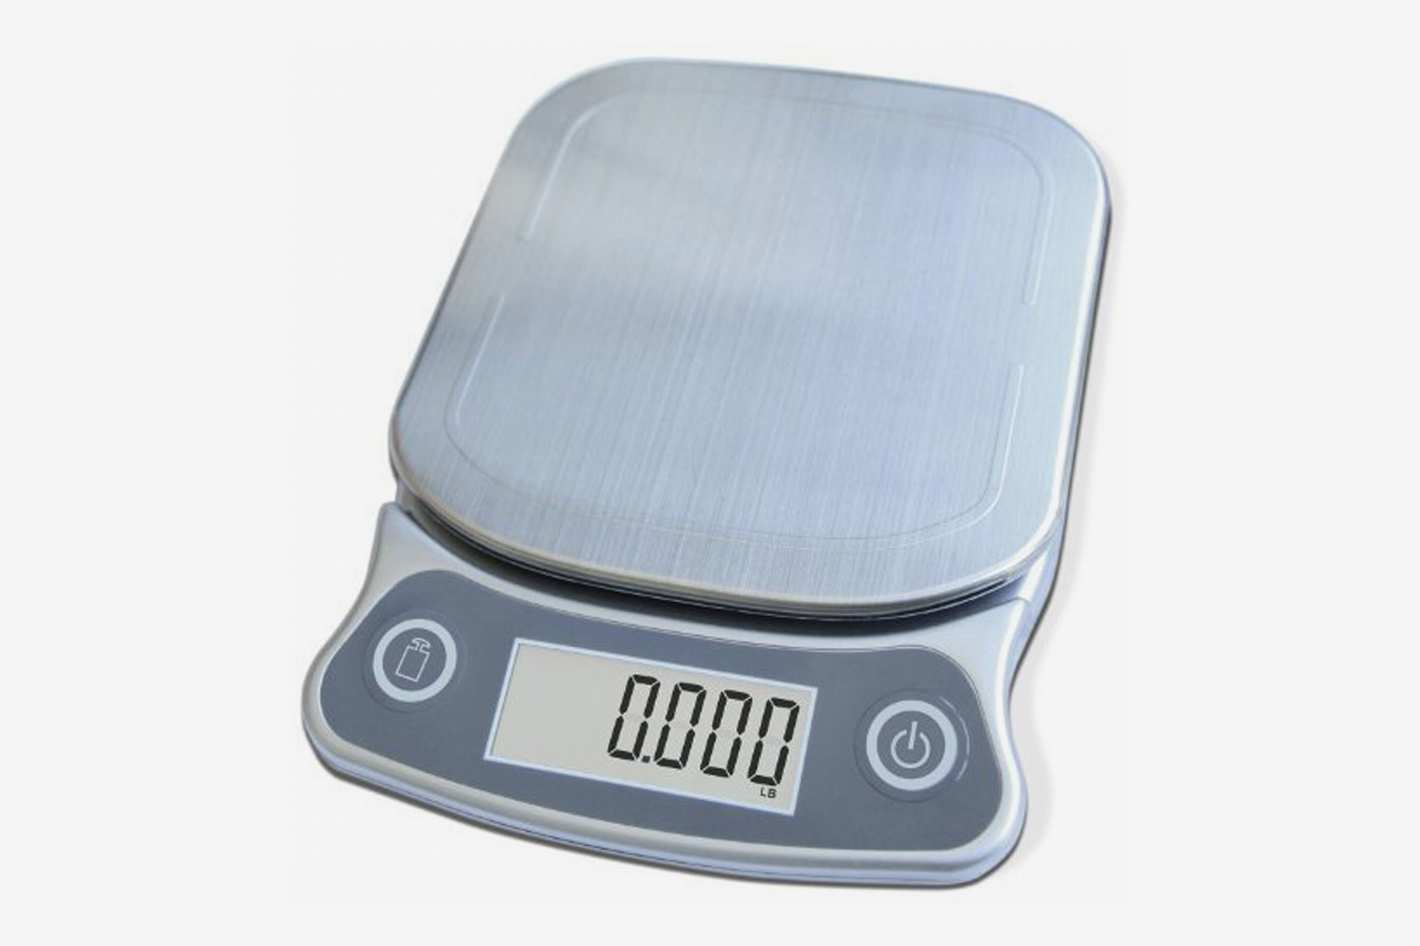 15 Best Kitchen Scales and Food Scales on Amazon: 2019